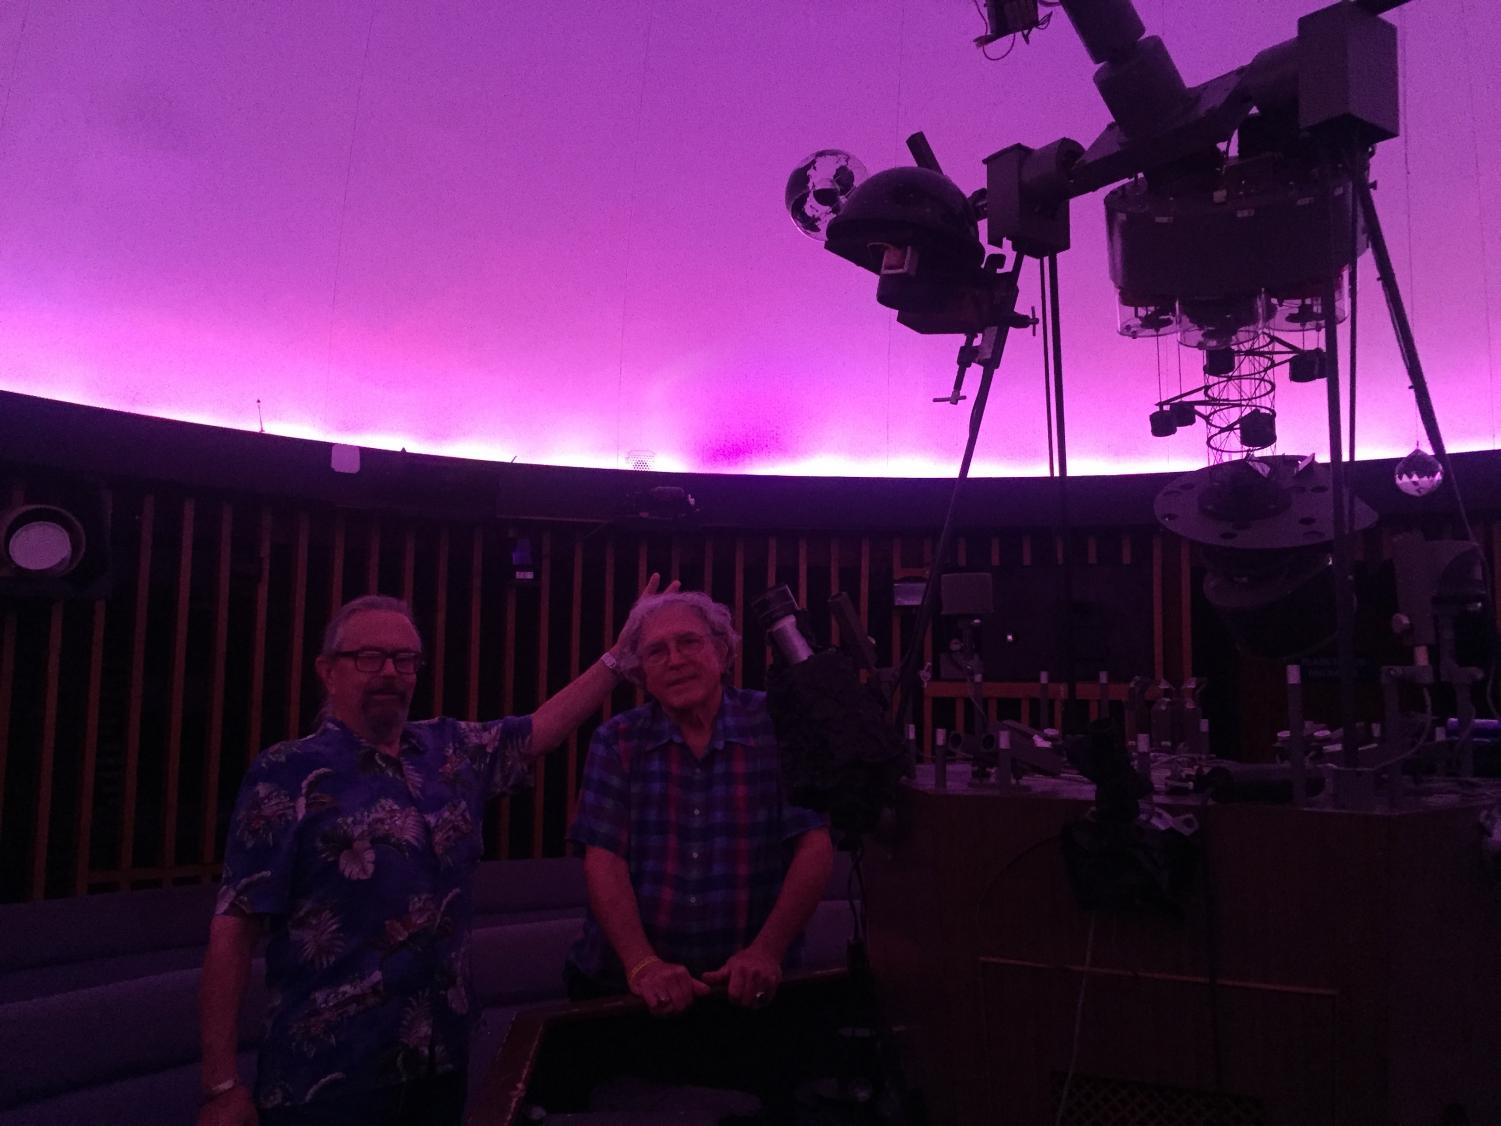 Tom Thompson (left) and Robert Allen (right) in the planetarium. Photo by Luis Acosta Jr.